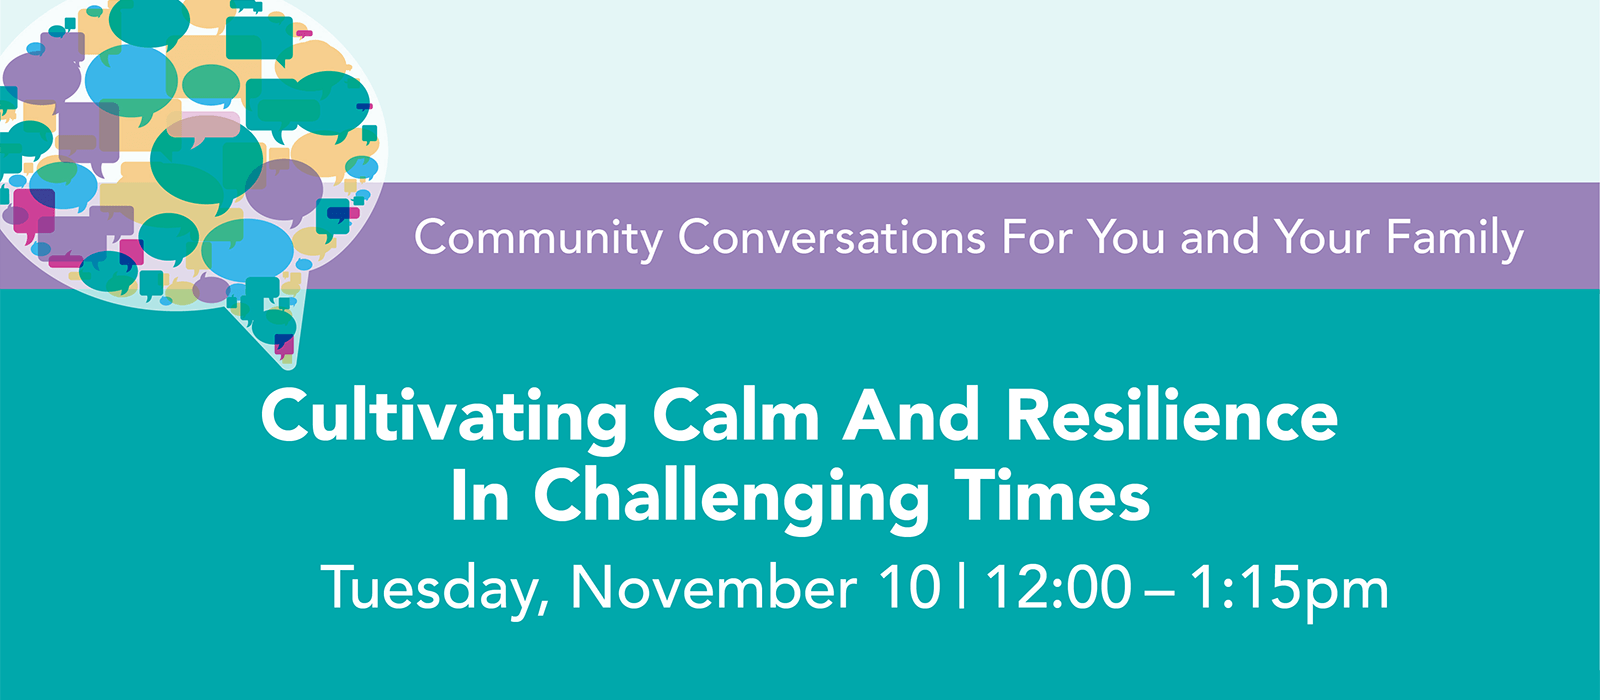 Cultivating Calm and Resilience in Challenging Time graphic